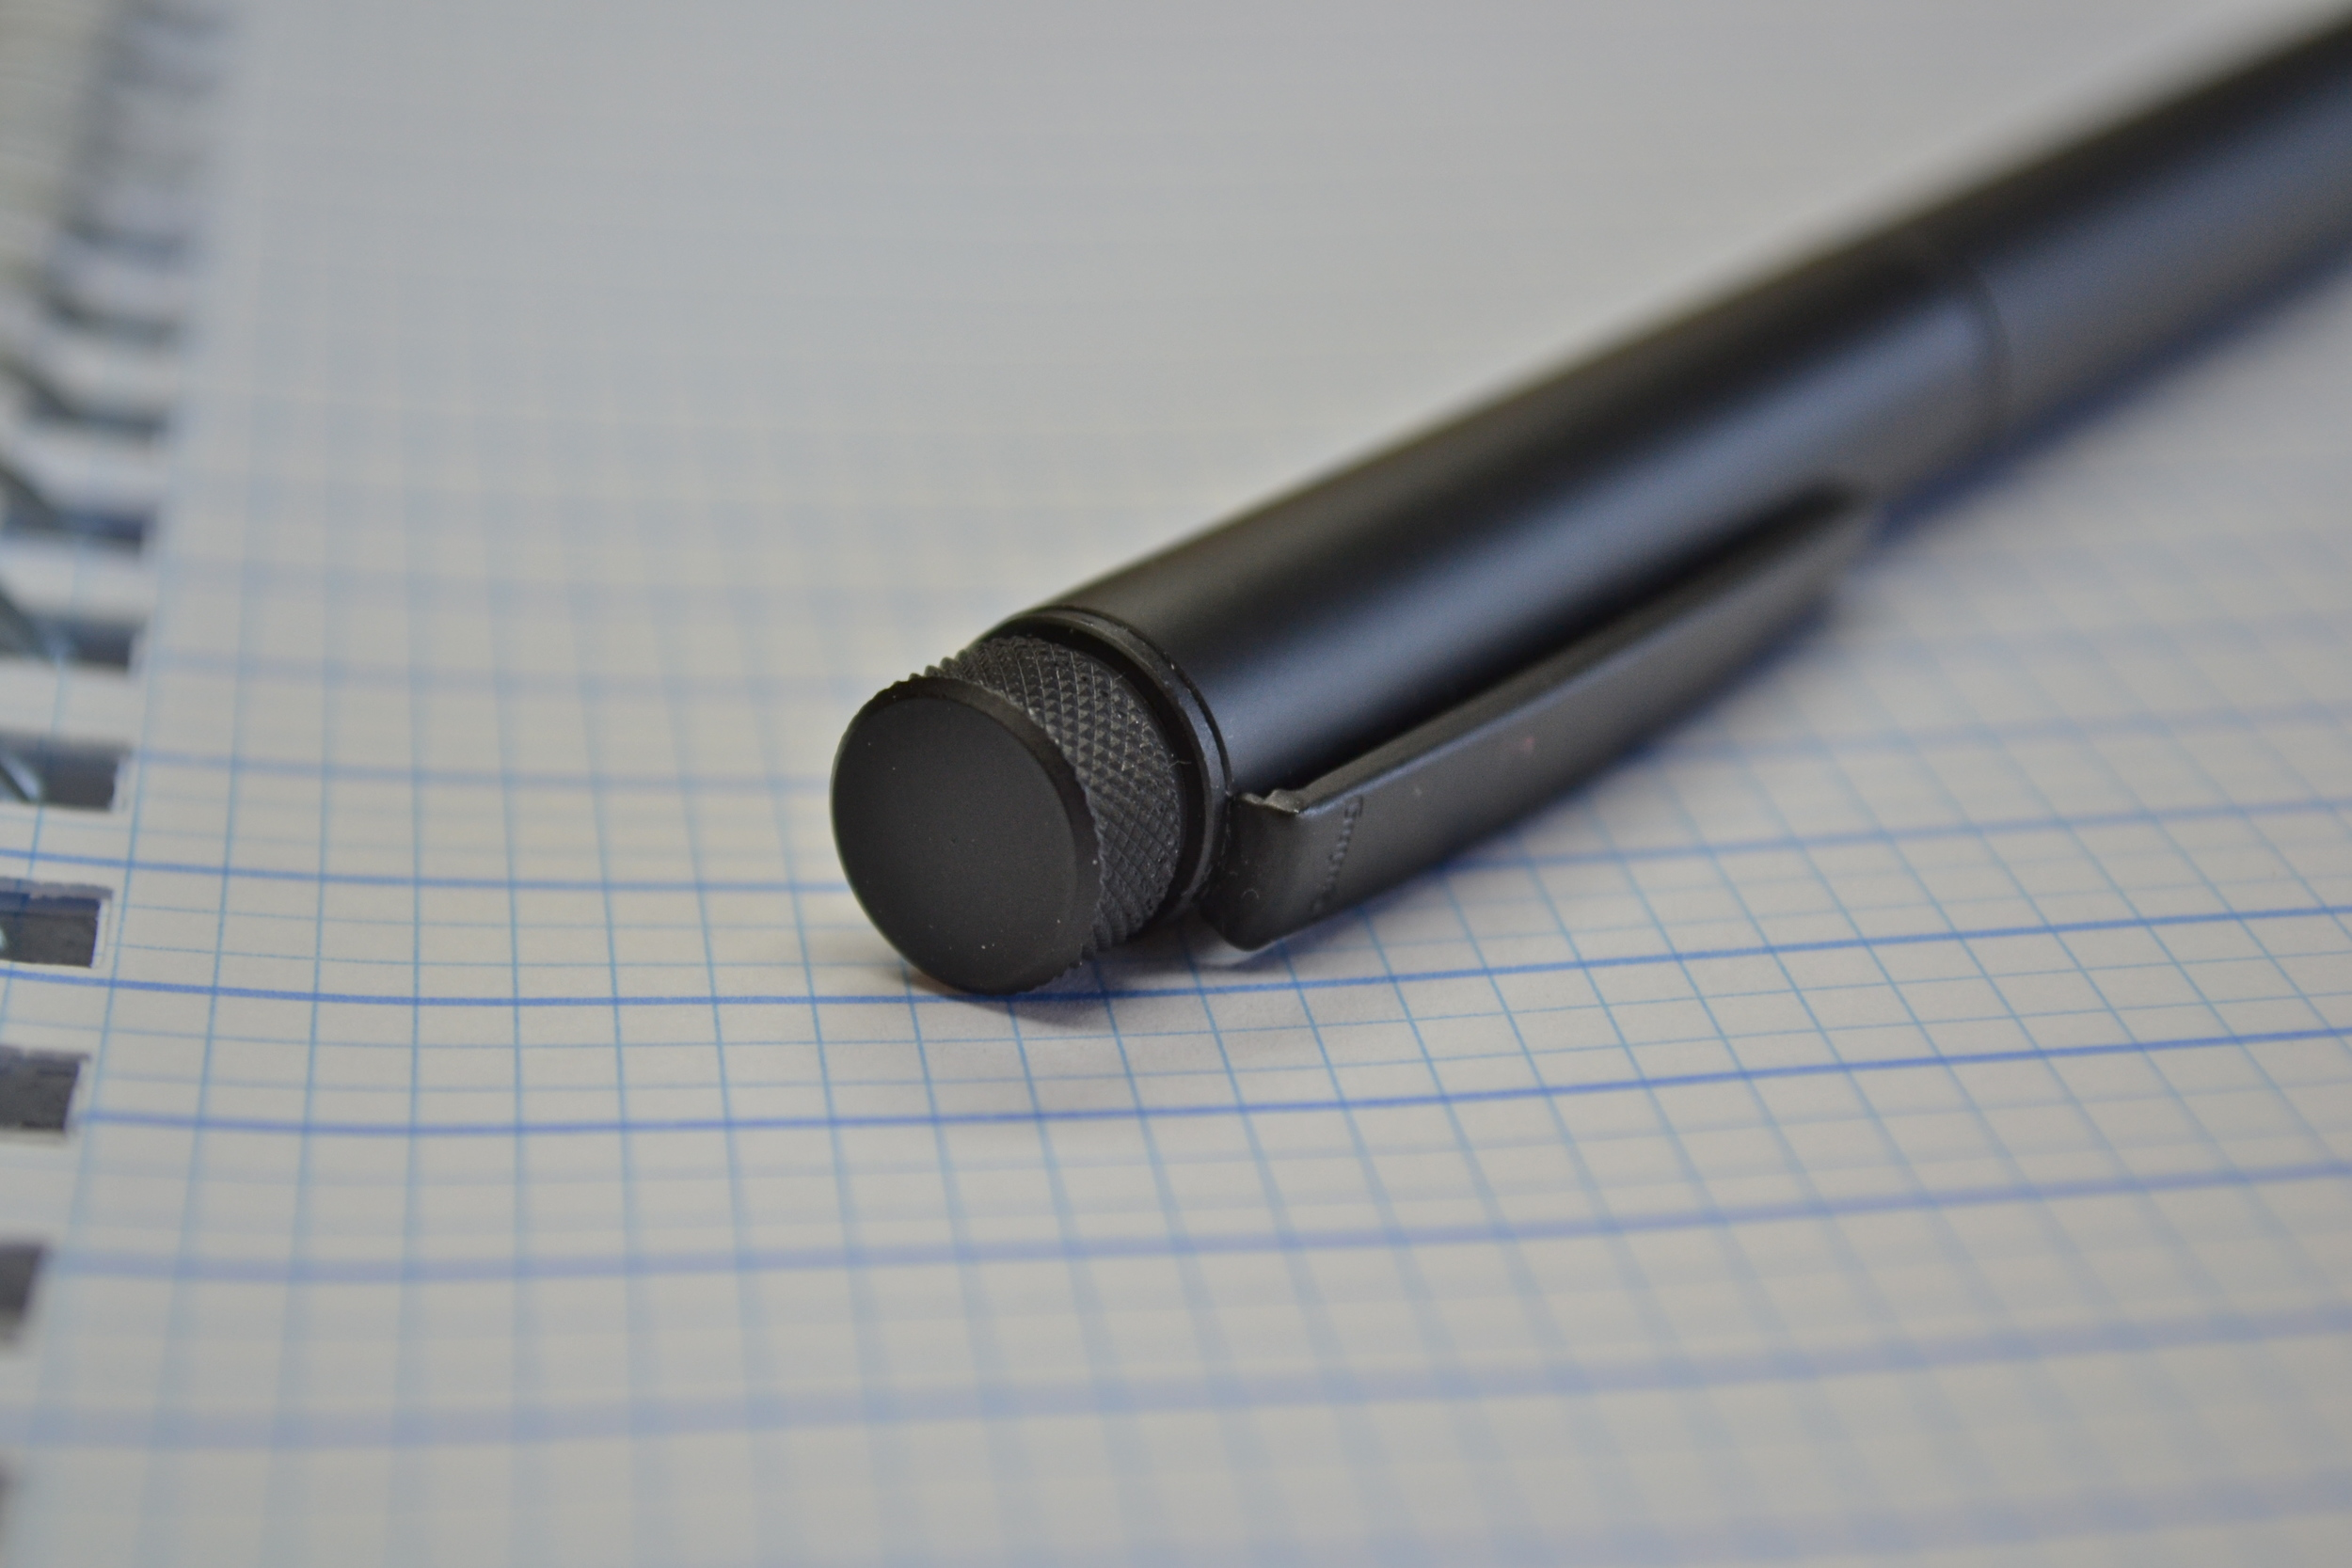 Review of the rare and odd black rOtring Lambda rollerball.